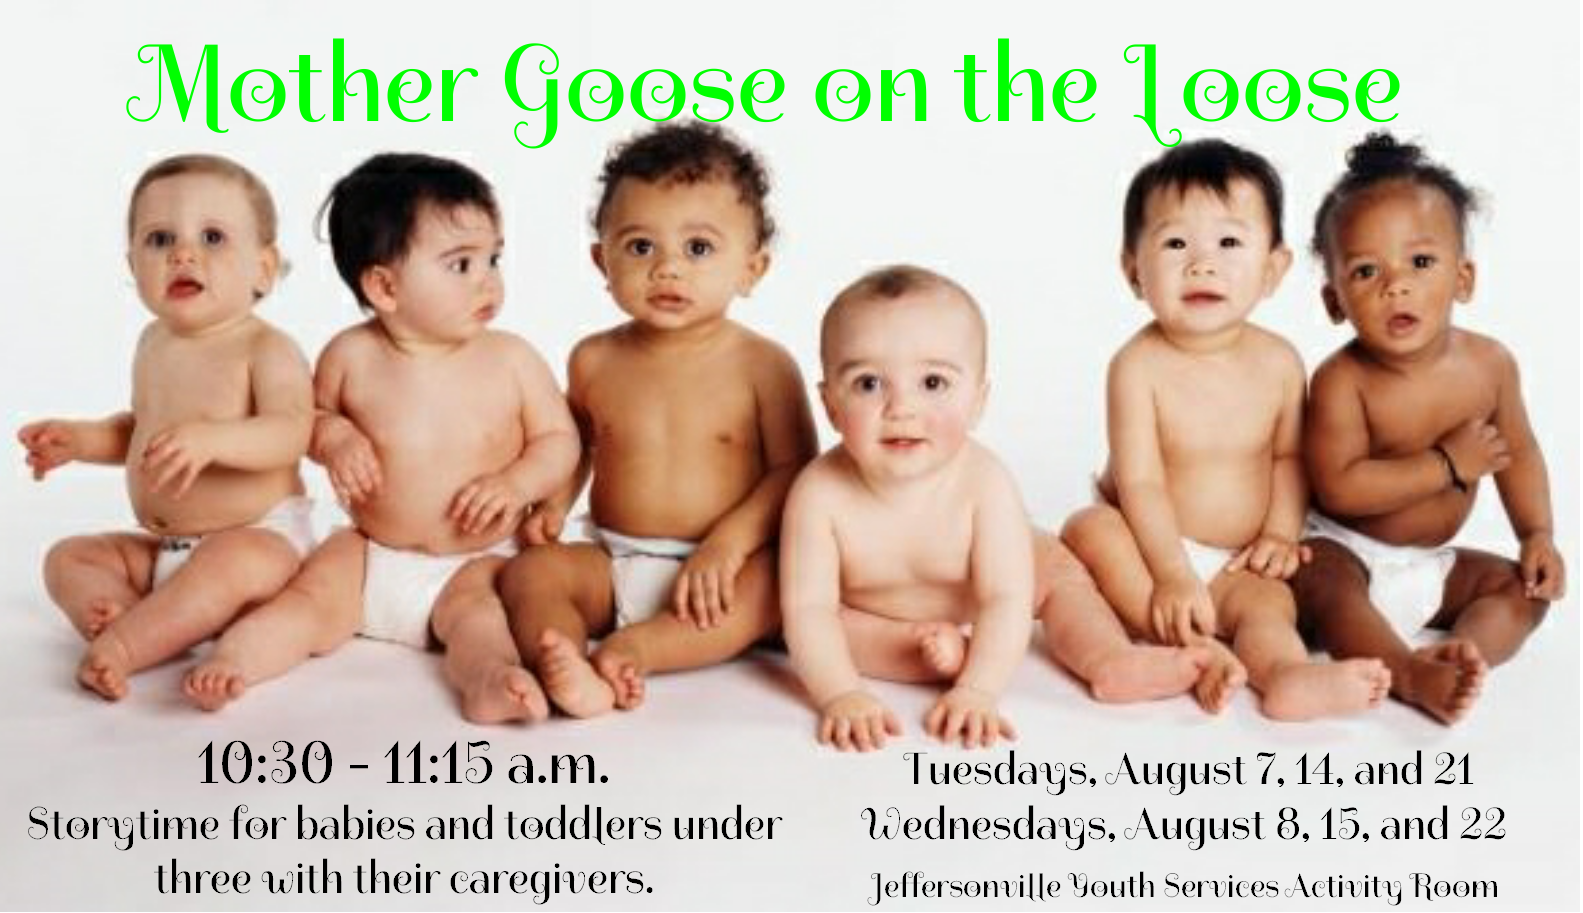 Mother Goose on the Loose in August